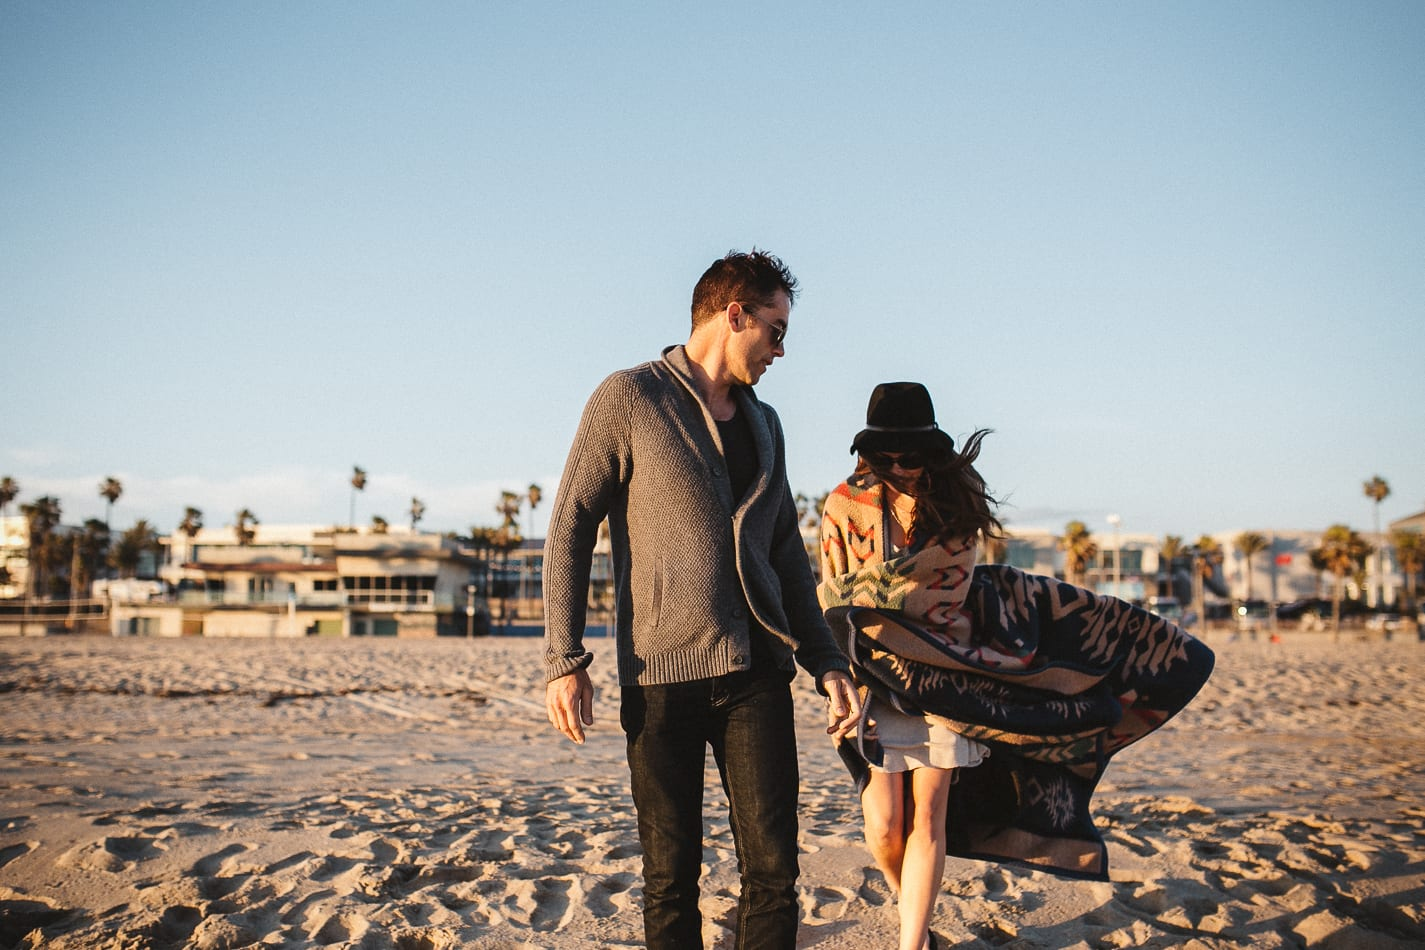 jason-alyssa-huntington-beach-california-engagement-photographer-3